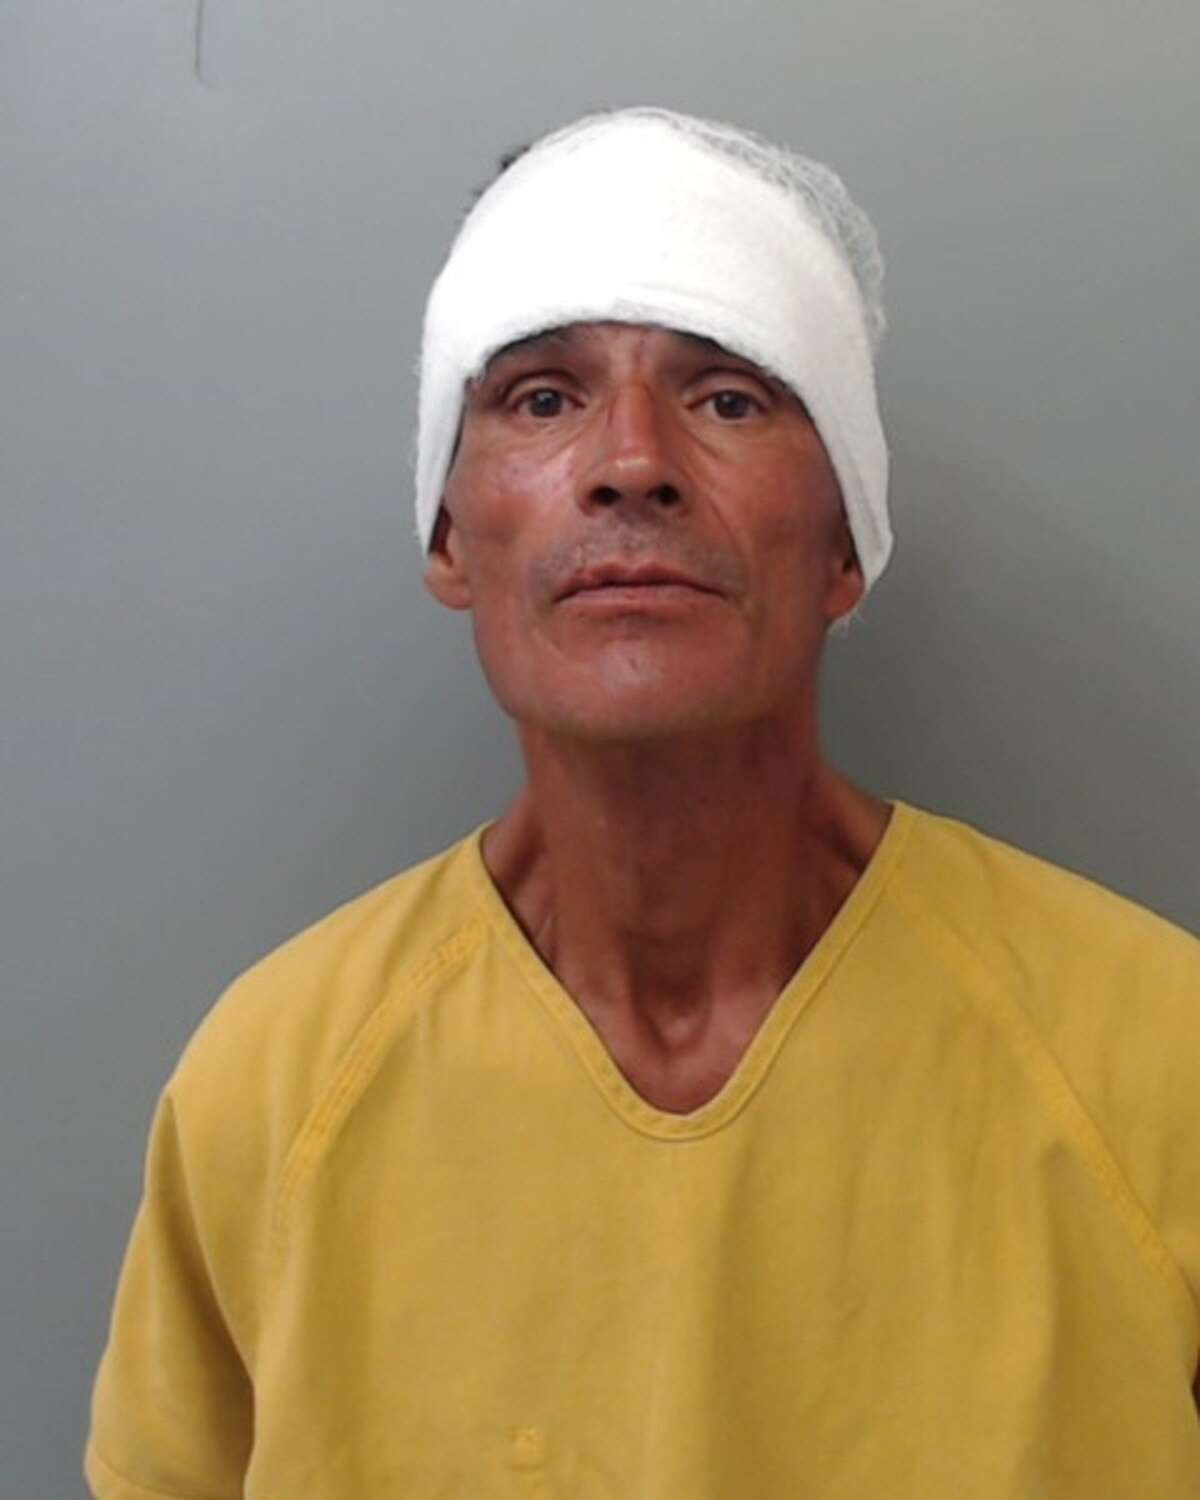 Jose Garcia III, 51, was charged with criminal mischief.